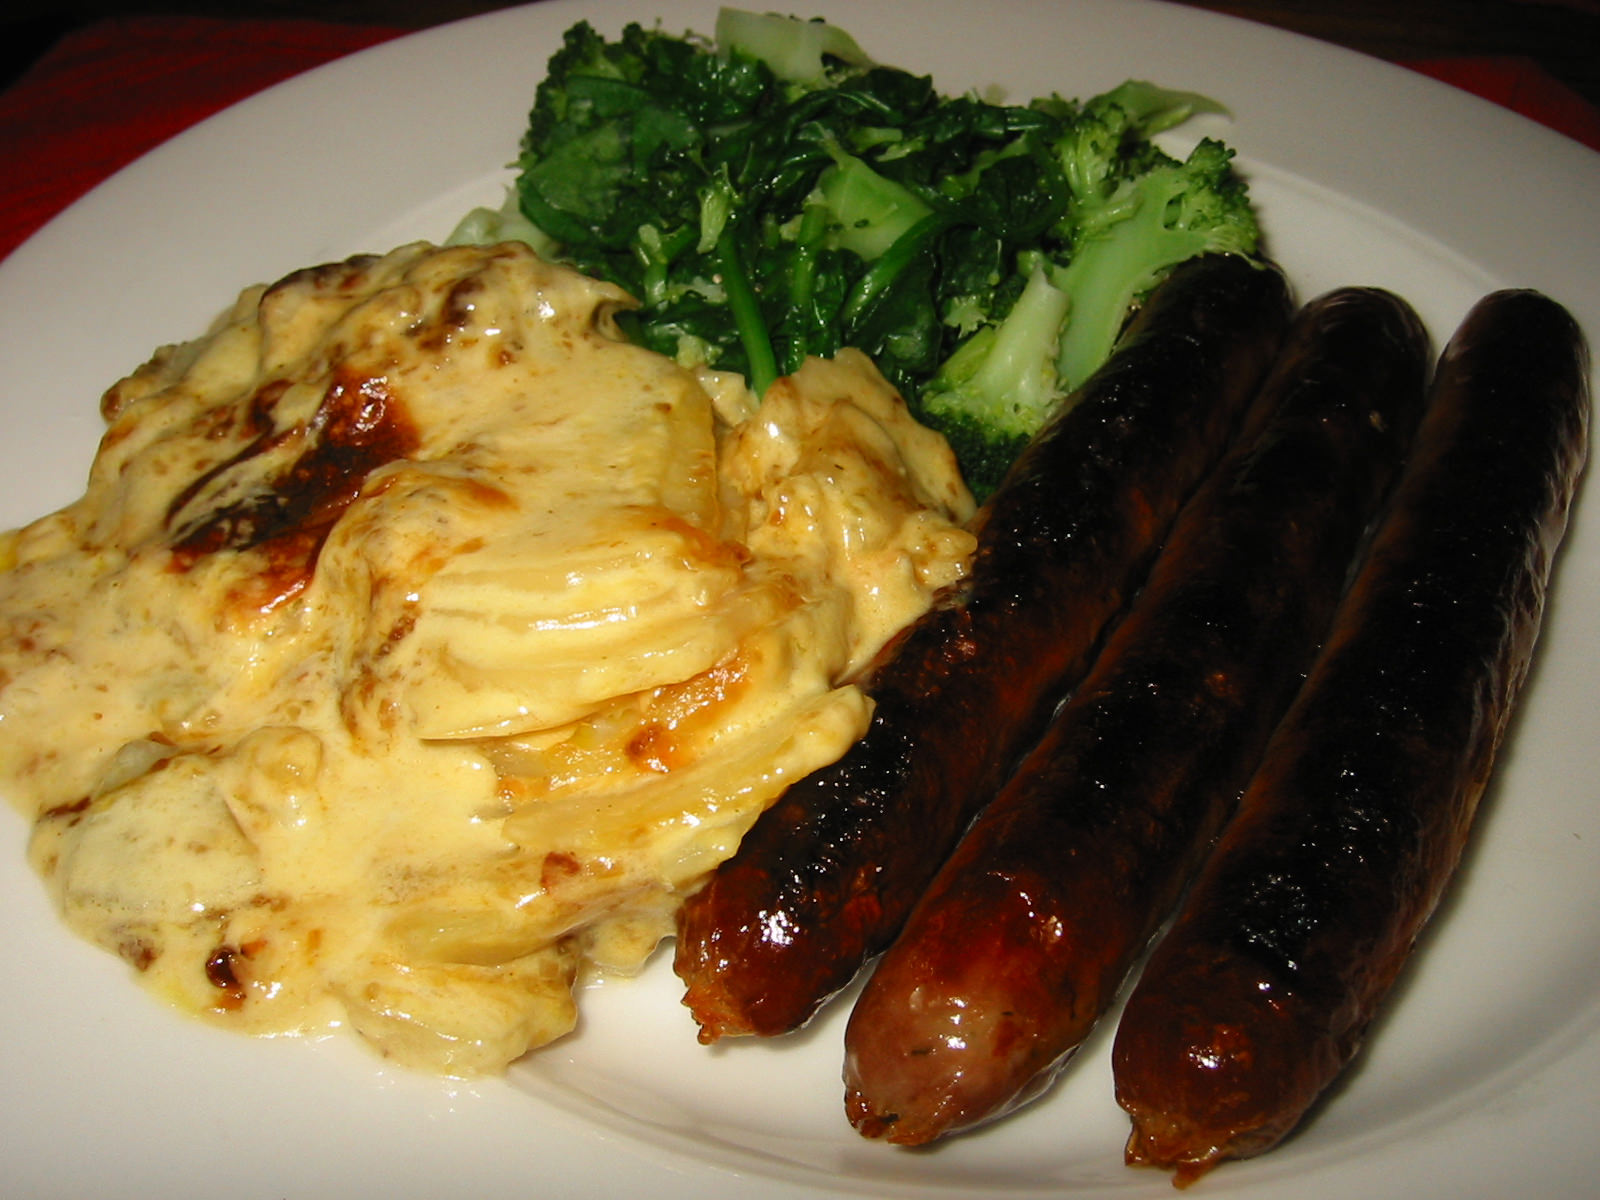 Sausages, potato bake and steamed broccoli and English spinach